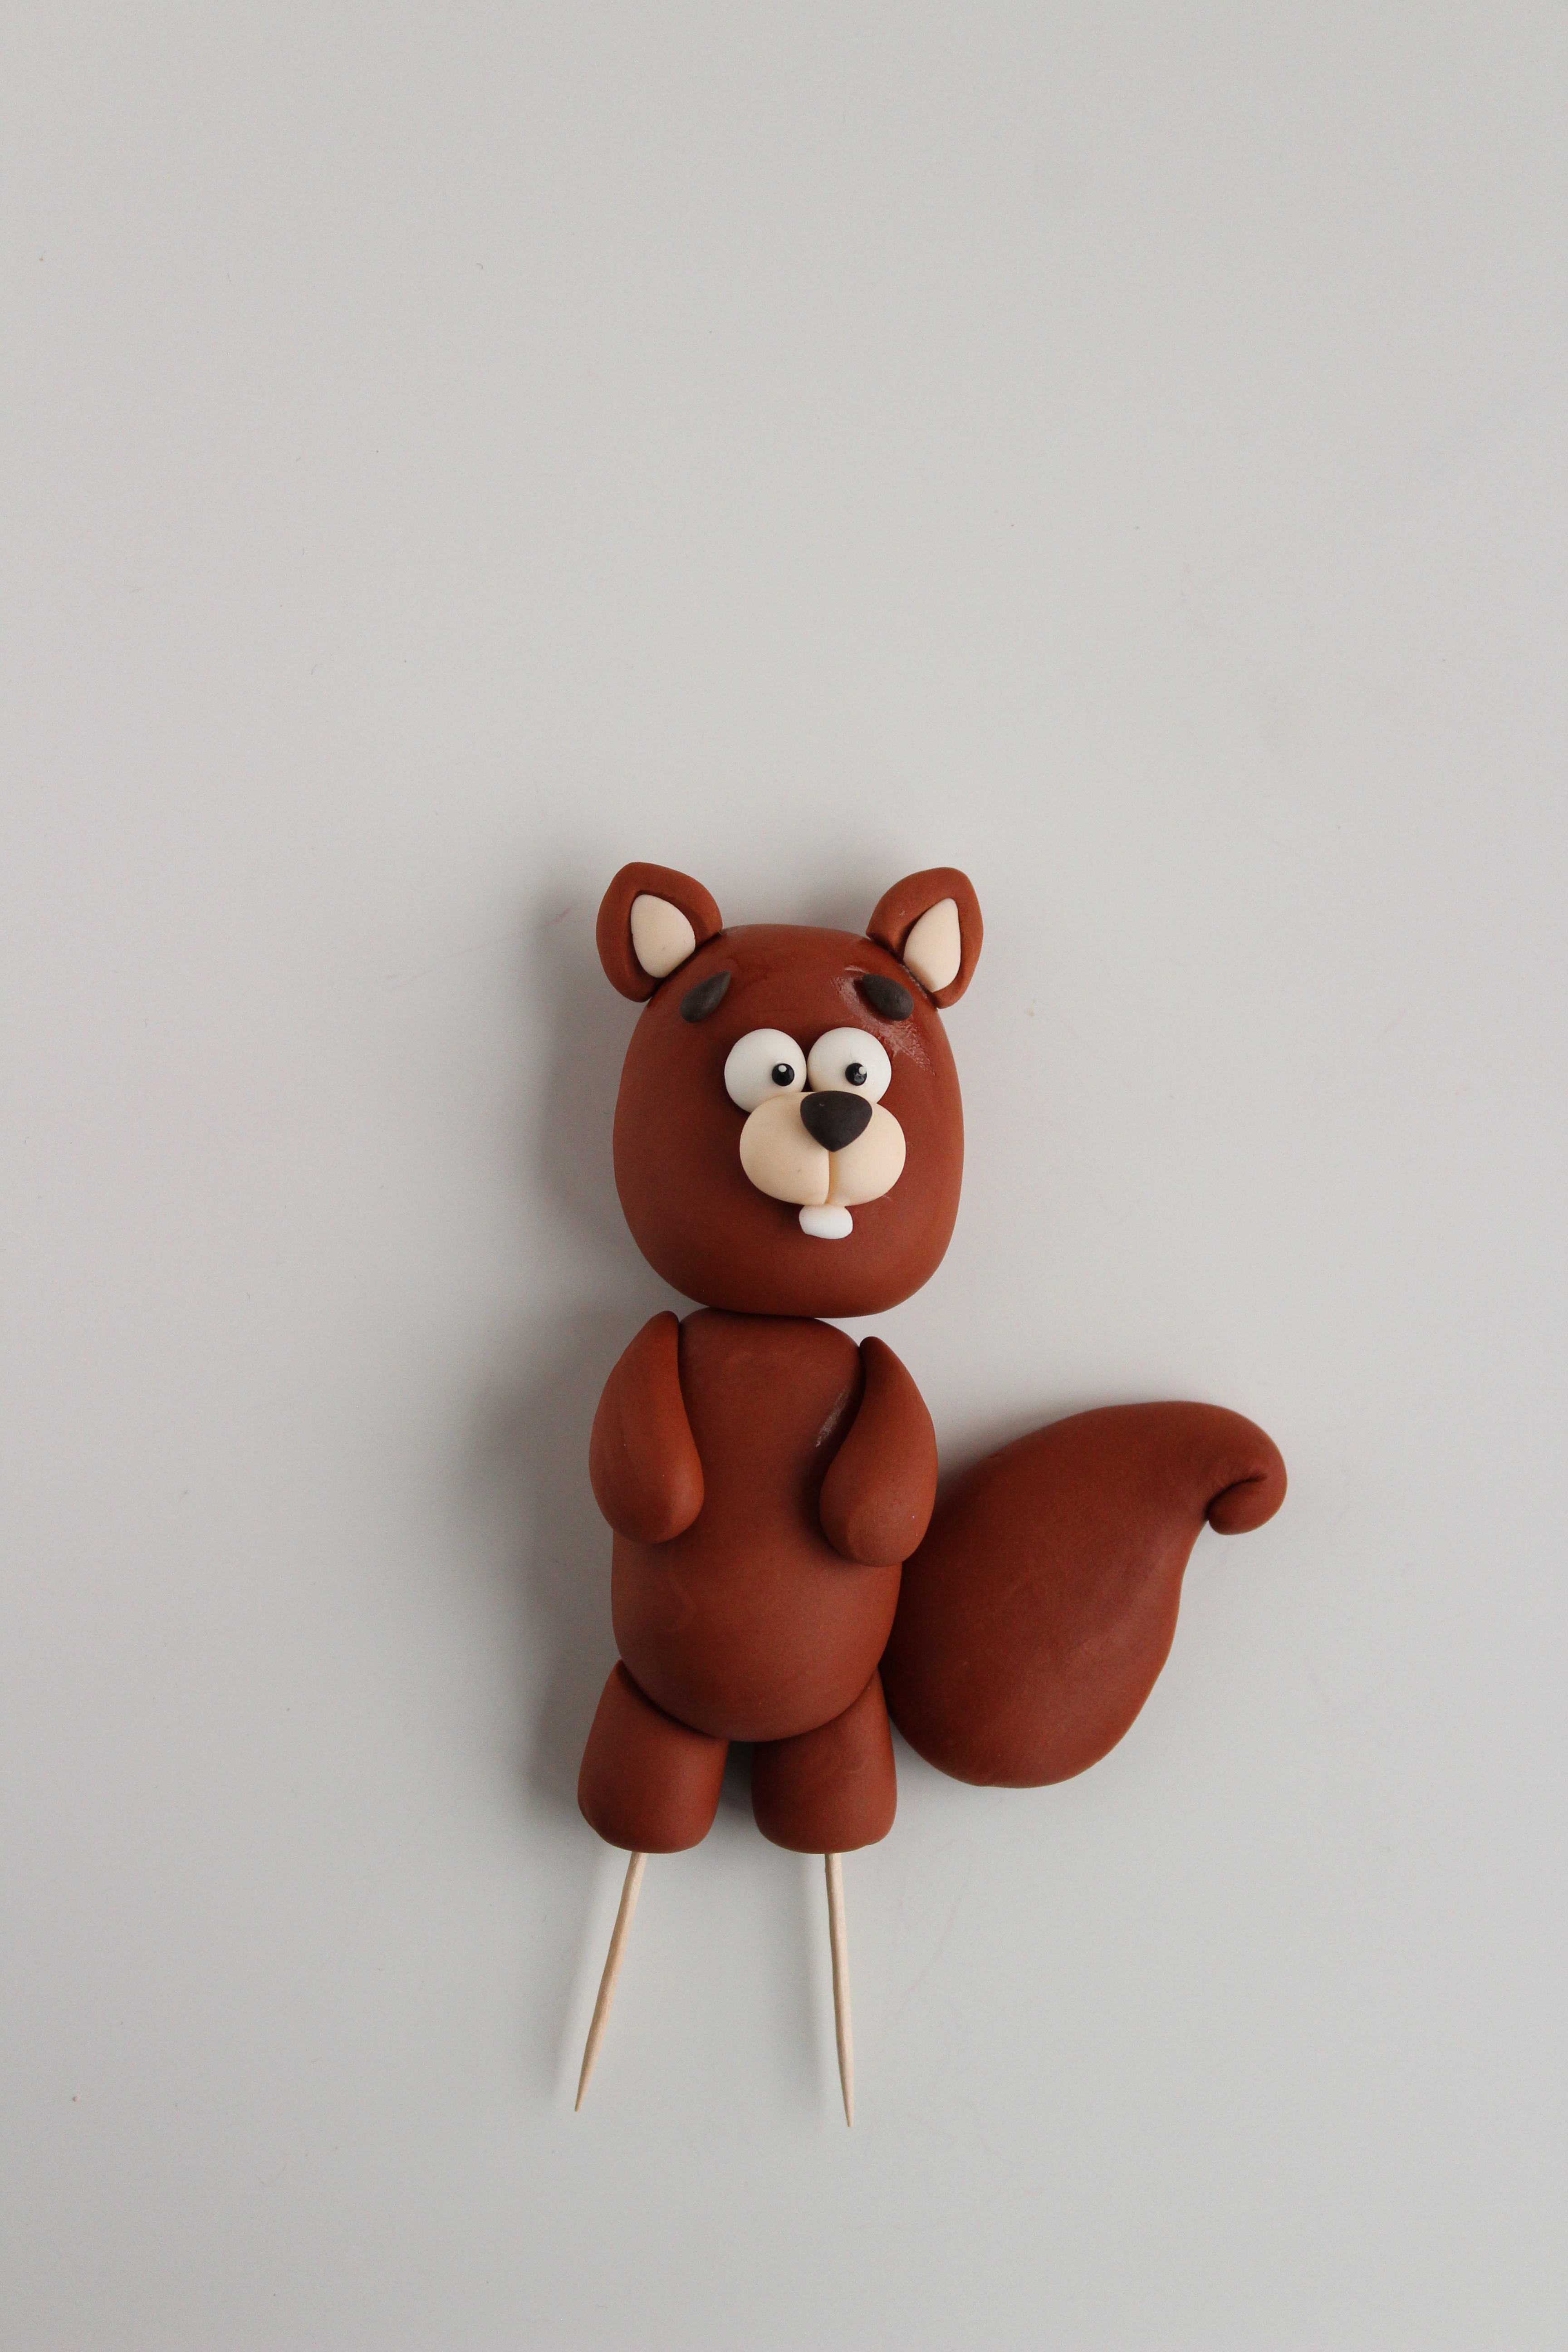 Party-Squirrel-Cake-9.JPG#asset:23984